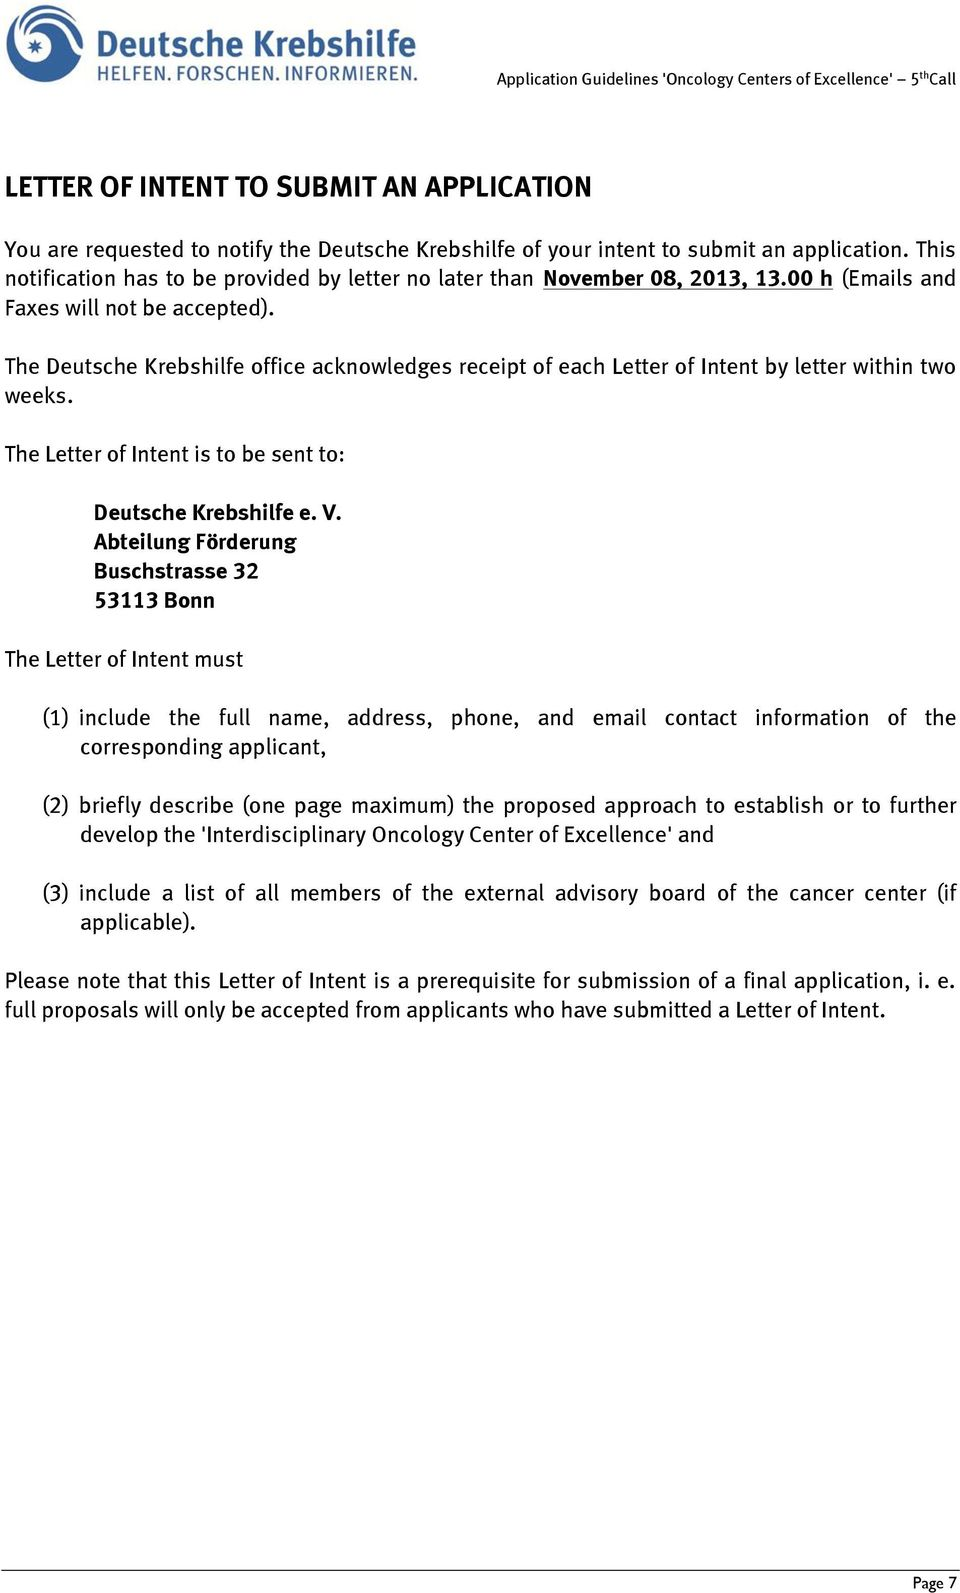 The Deutsche Krebshilfe office acknowledges receipt of each Letter of Intent by letter within two weeks. The Letter of Intent is to be sent to: Deutsche Krebshilfe e. V.